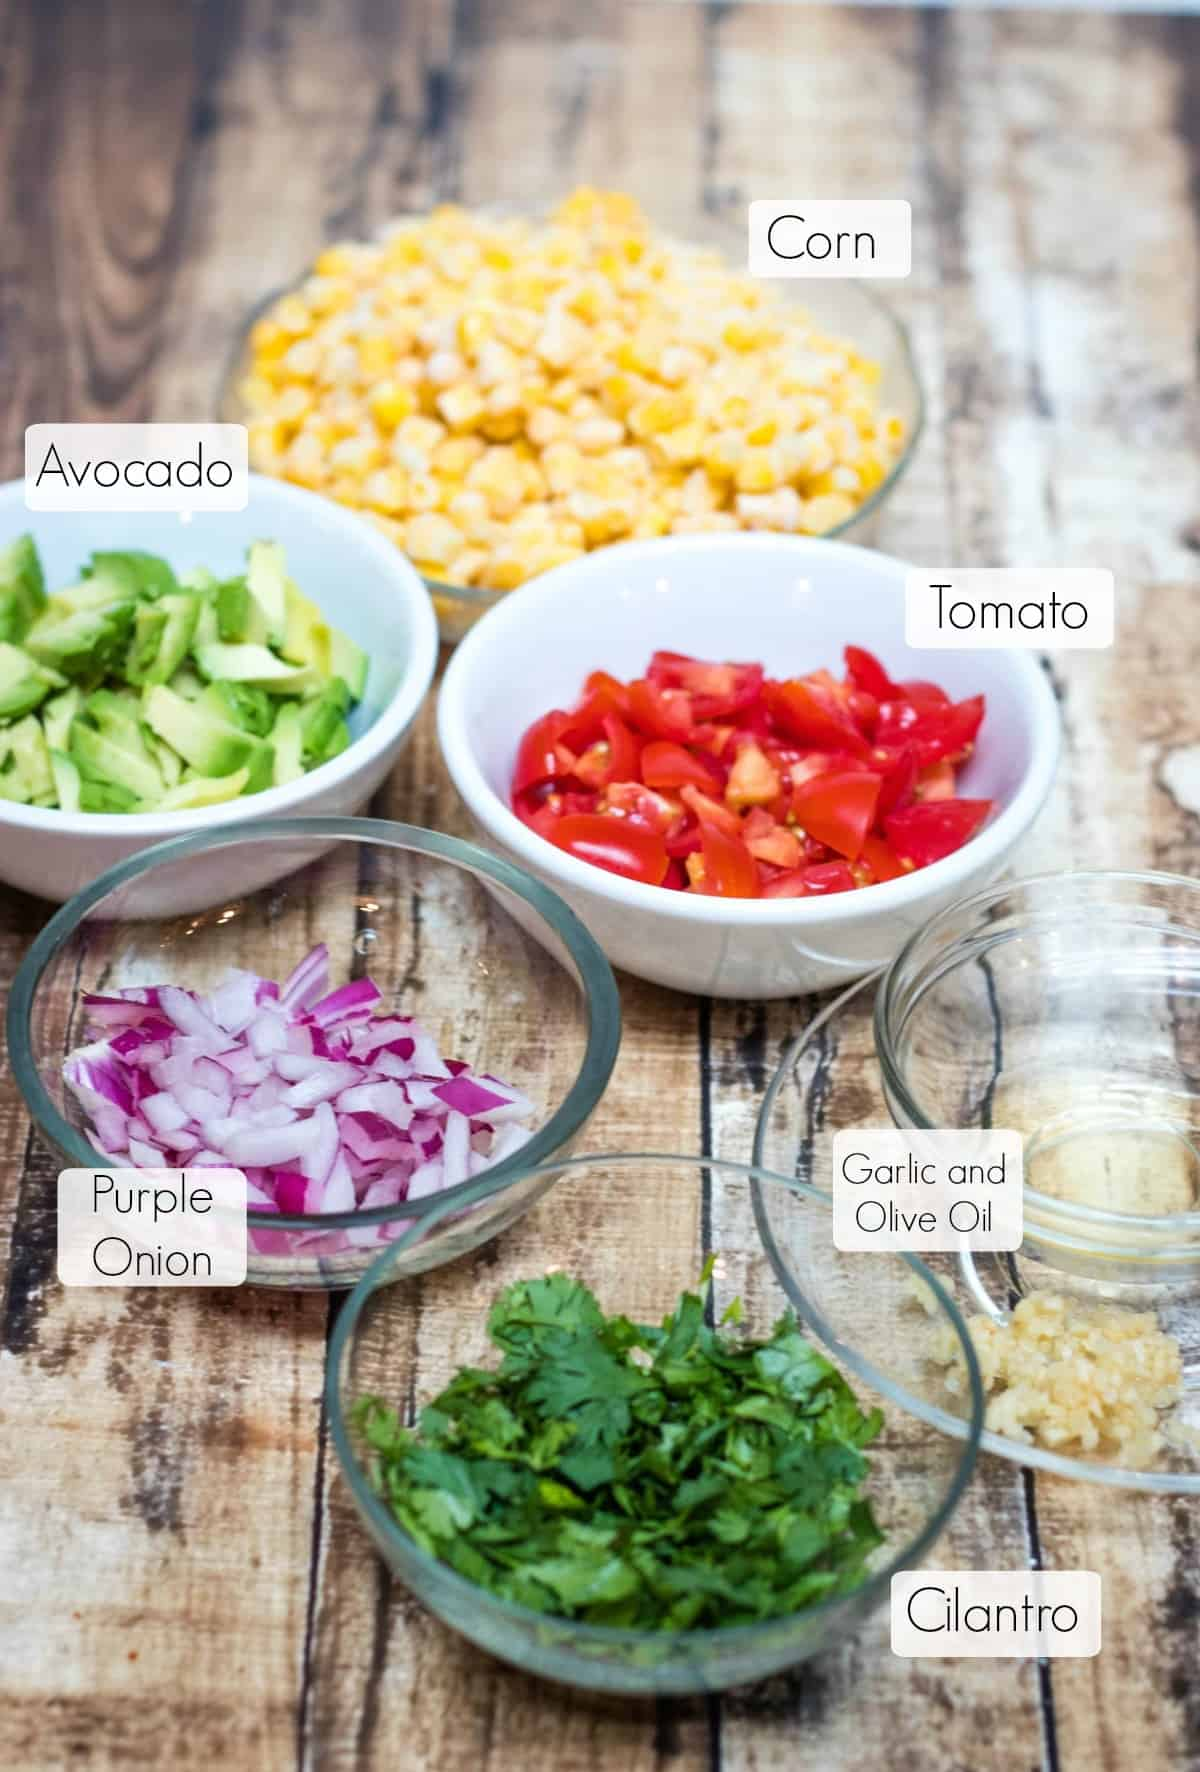 Image of ingredients for corn, avocado and tomato salsa.